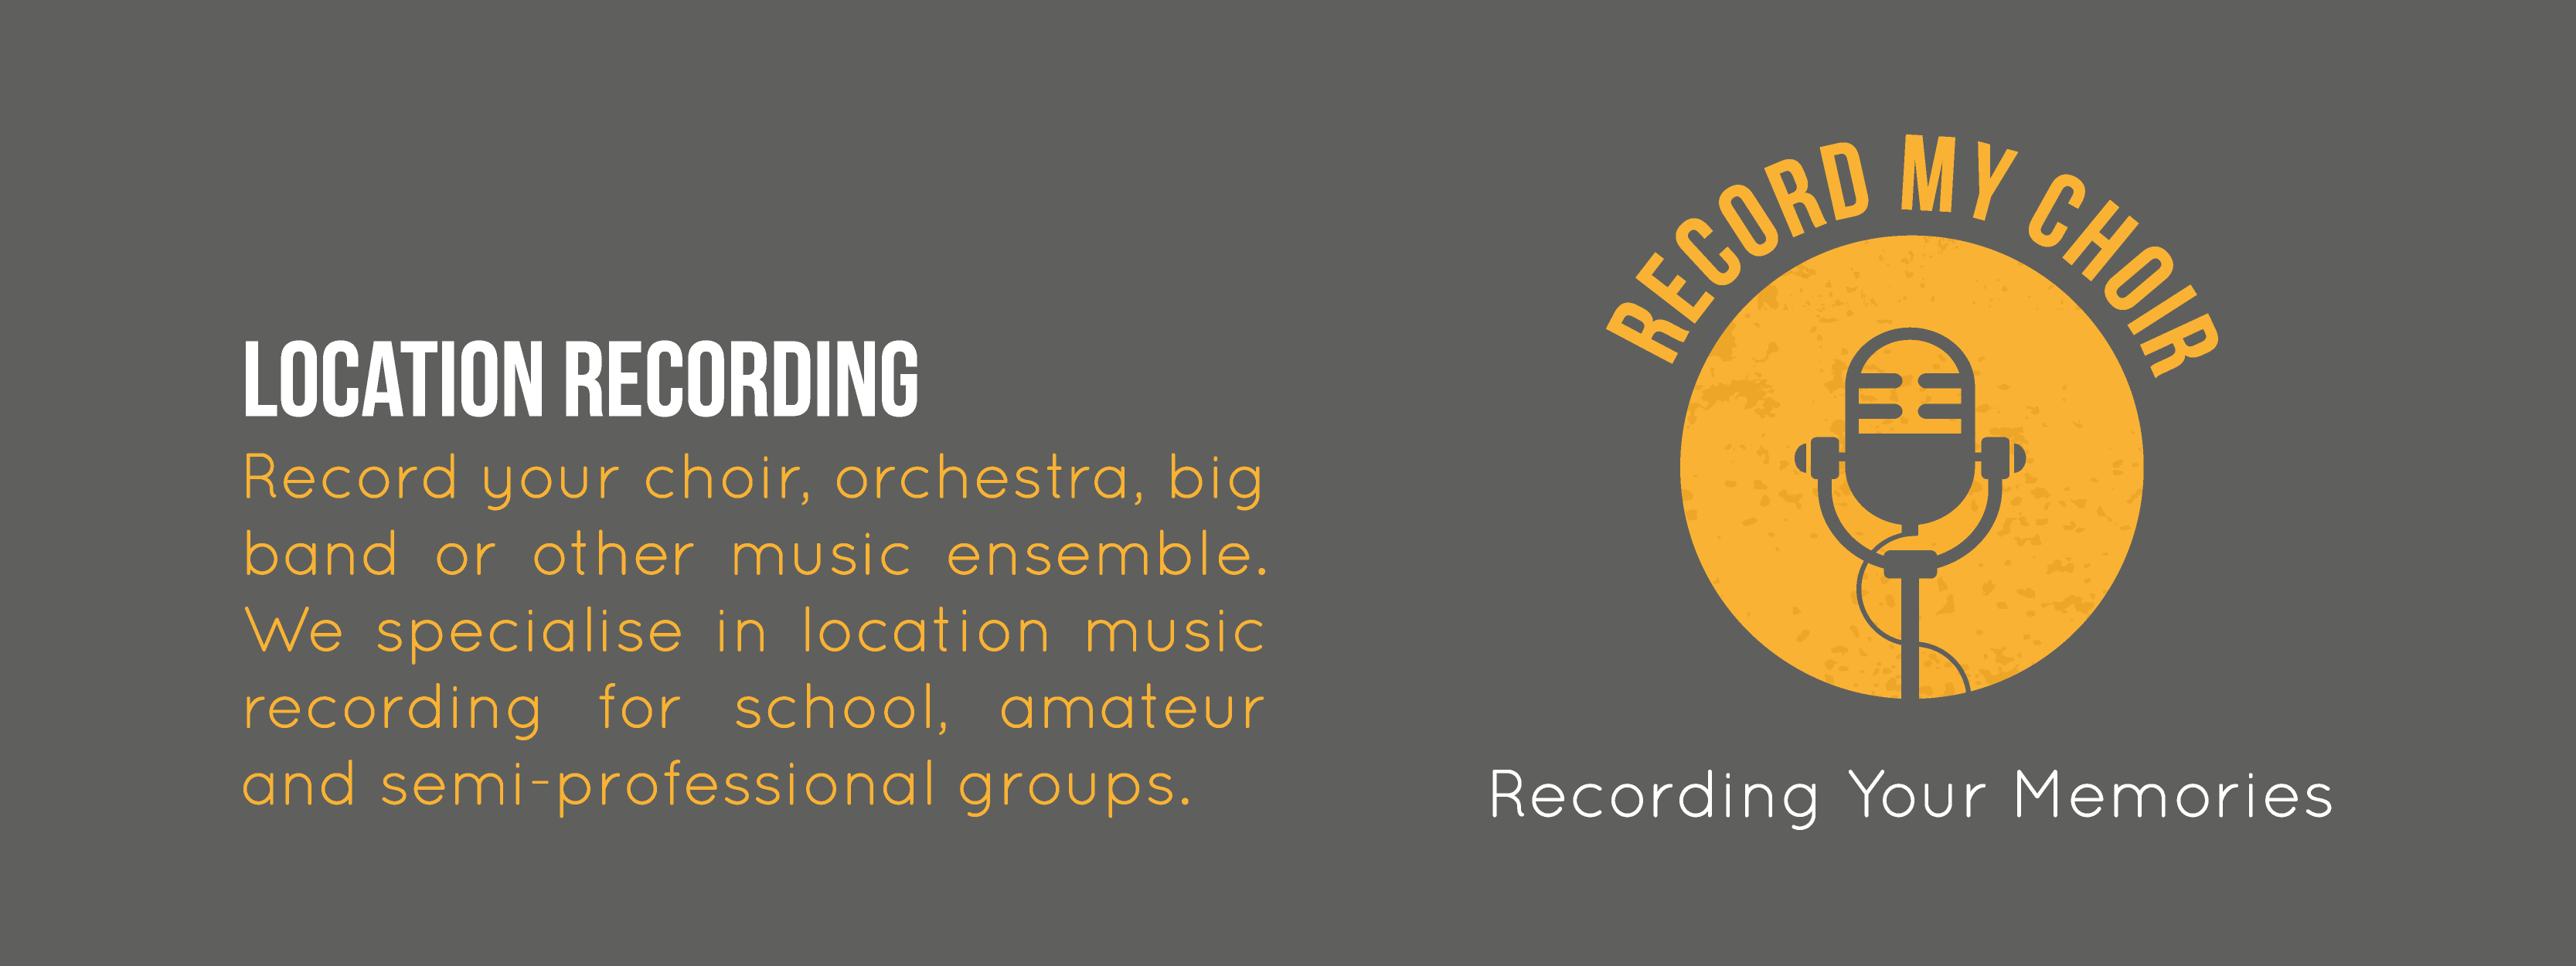 Location Music Recording - Record My Choir